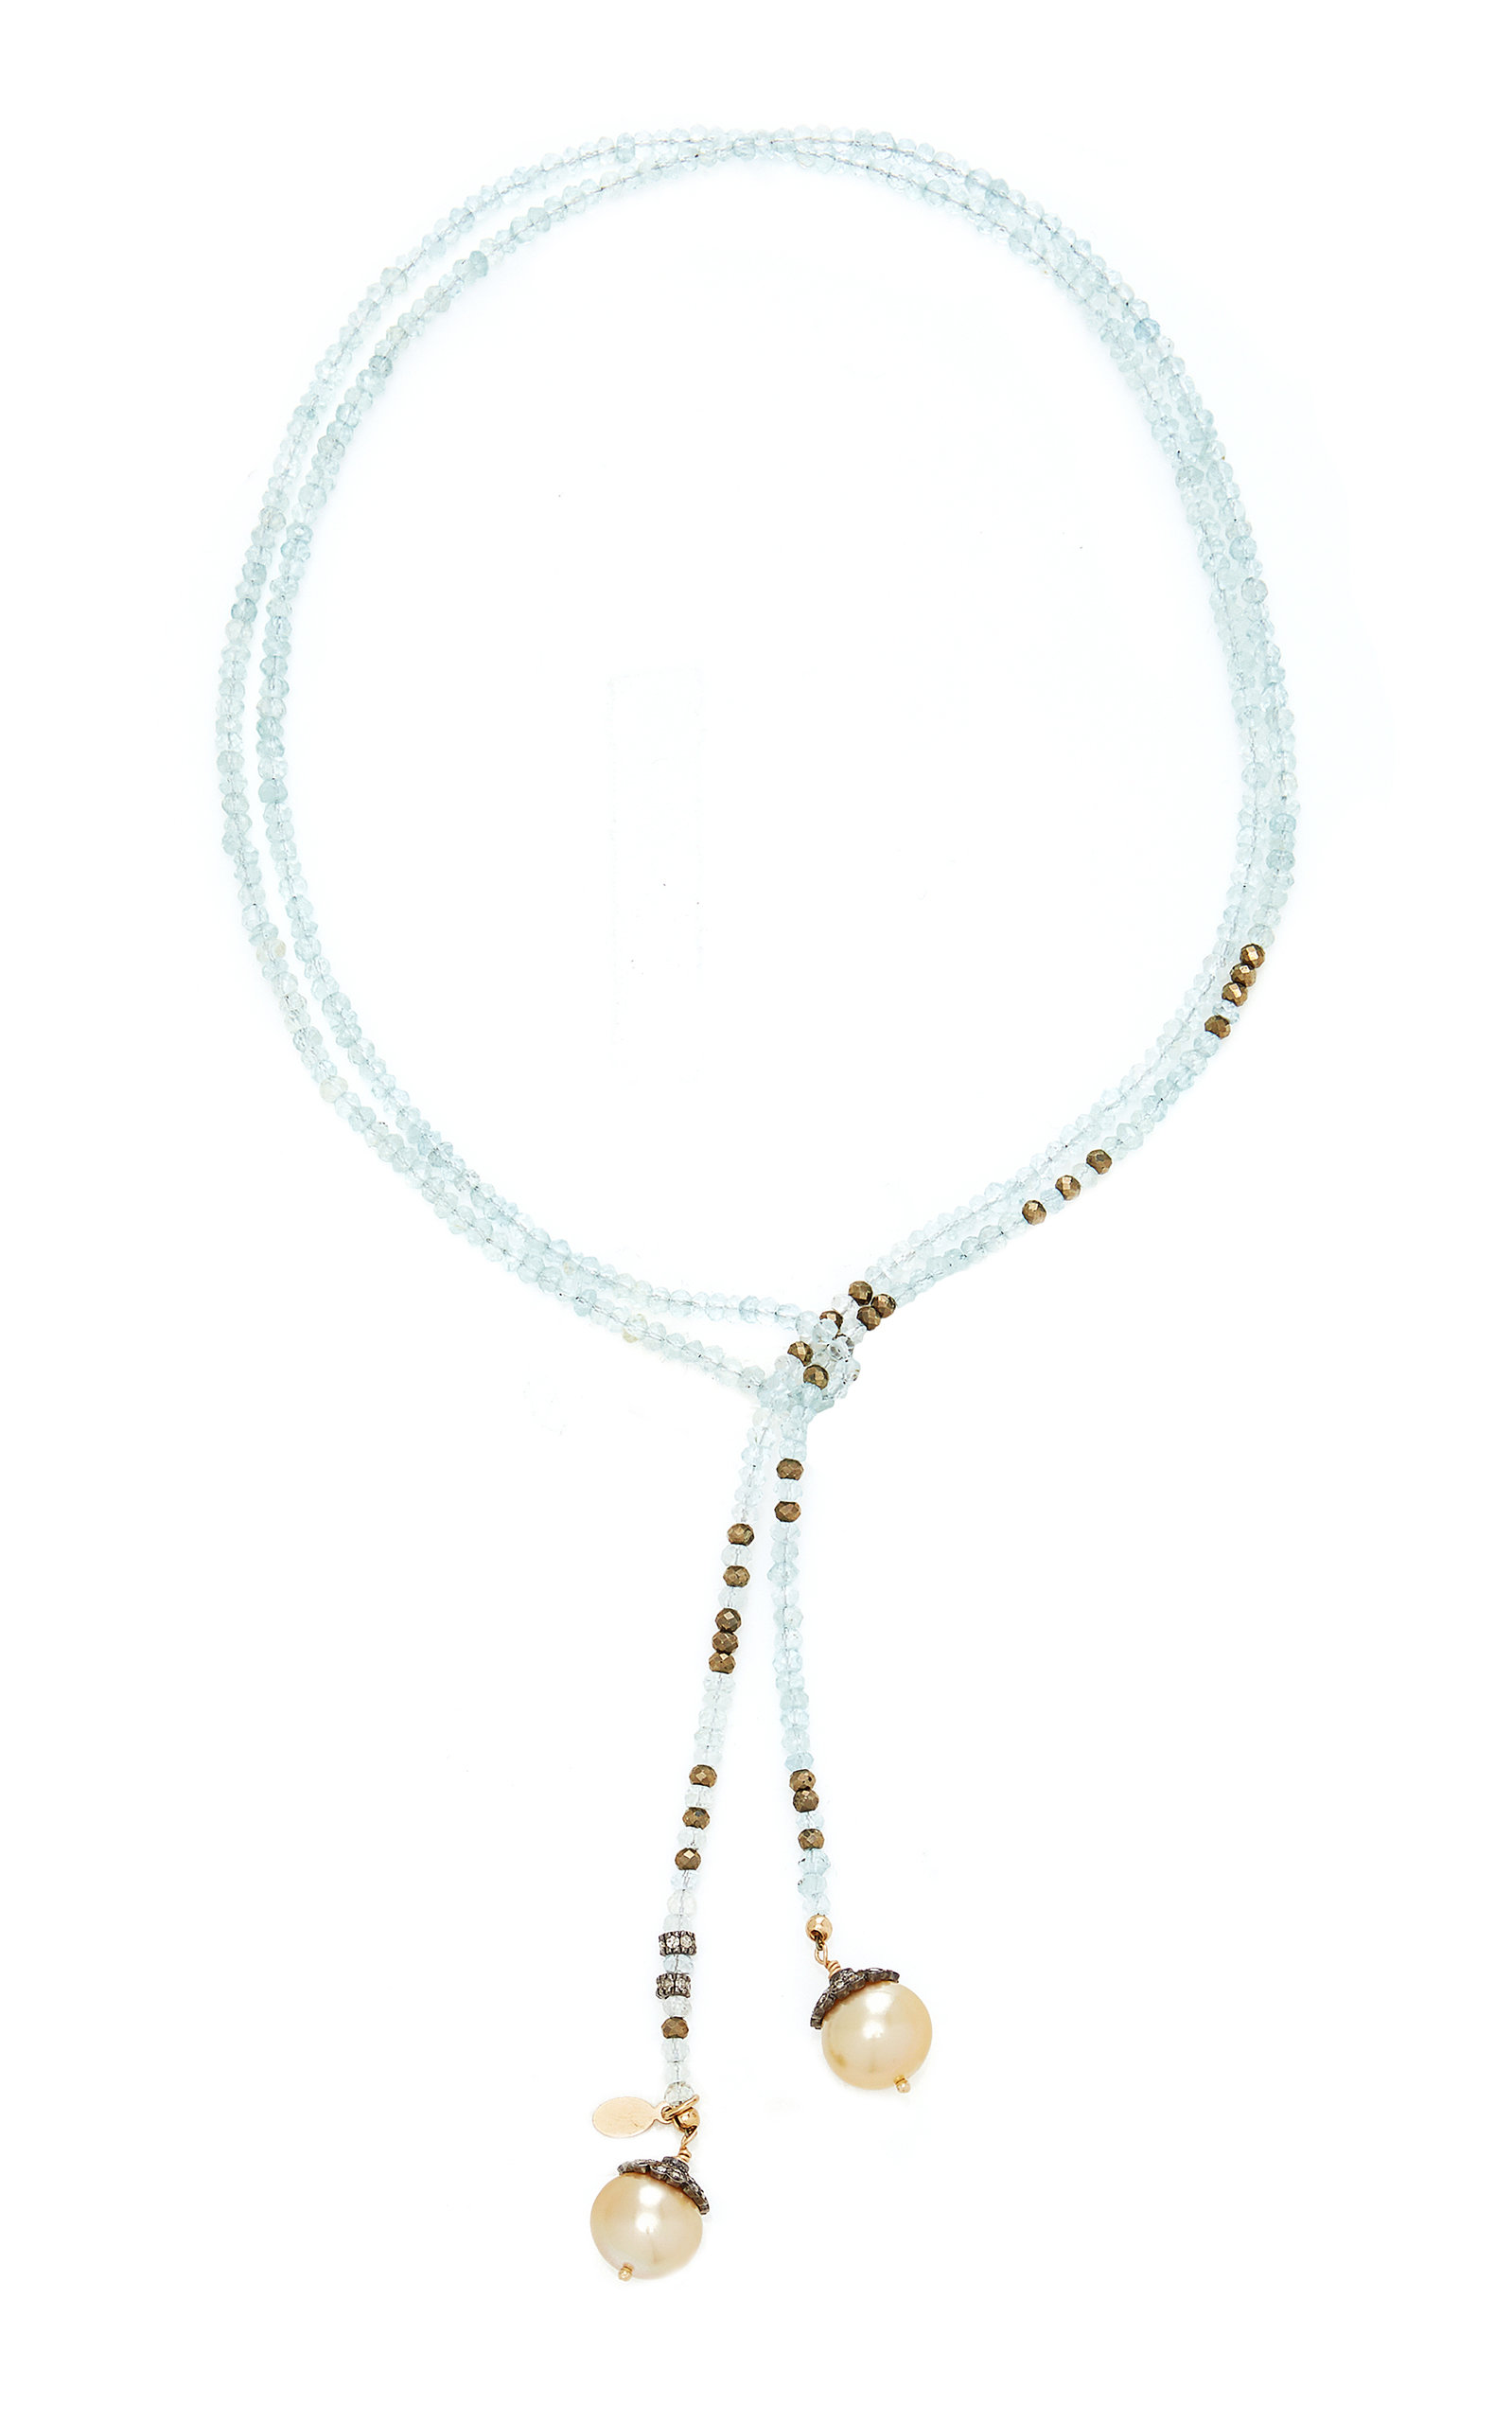 Women's 14K Gold; Aquamarine; Pyrite and Pearl Necklace